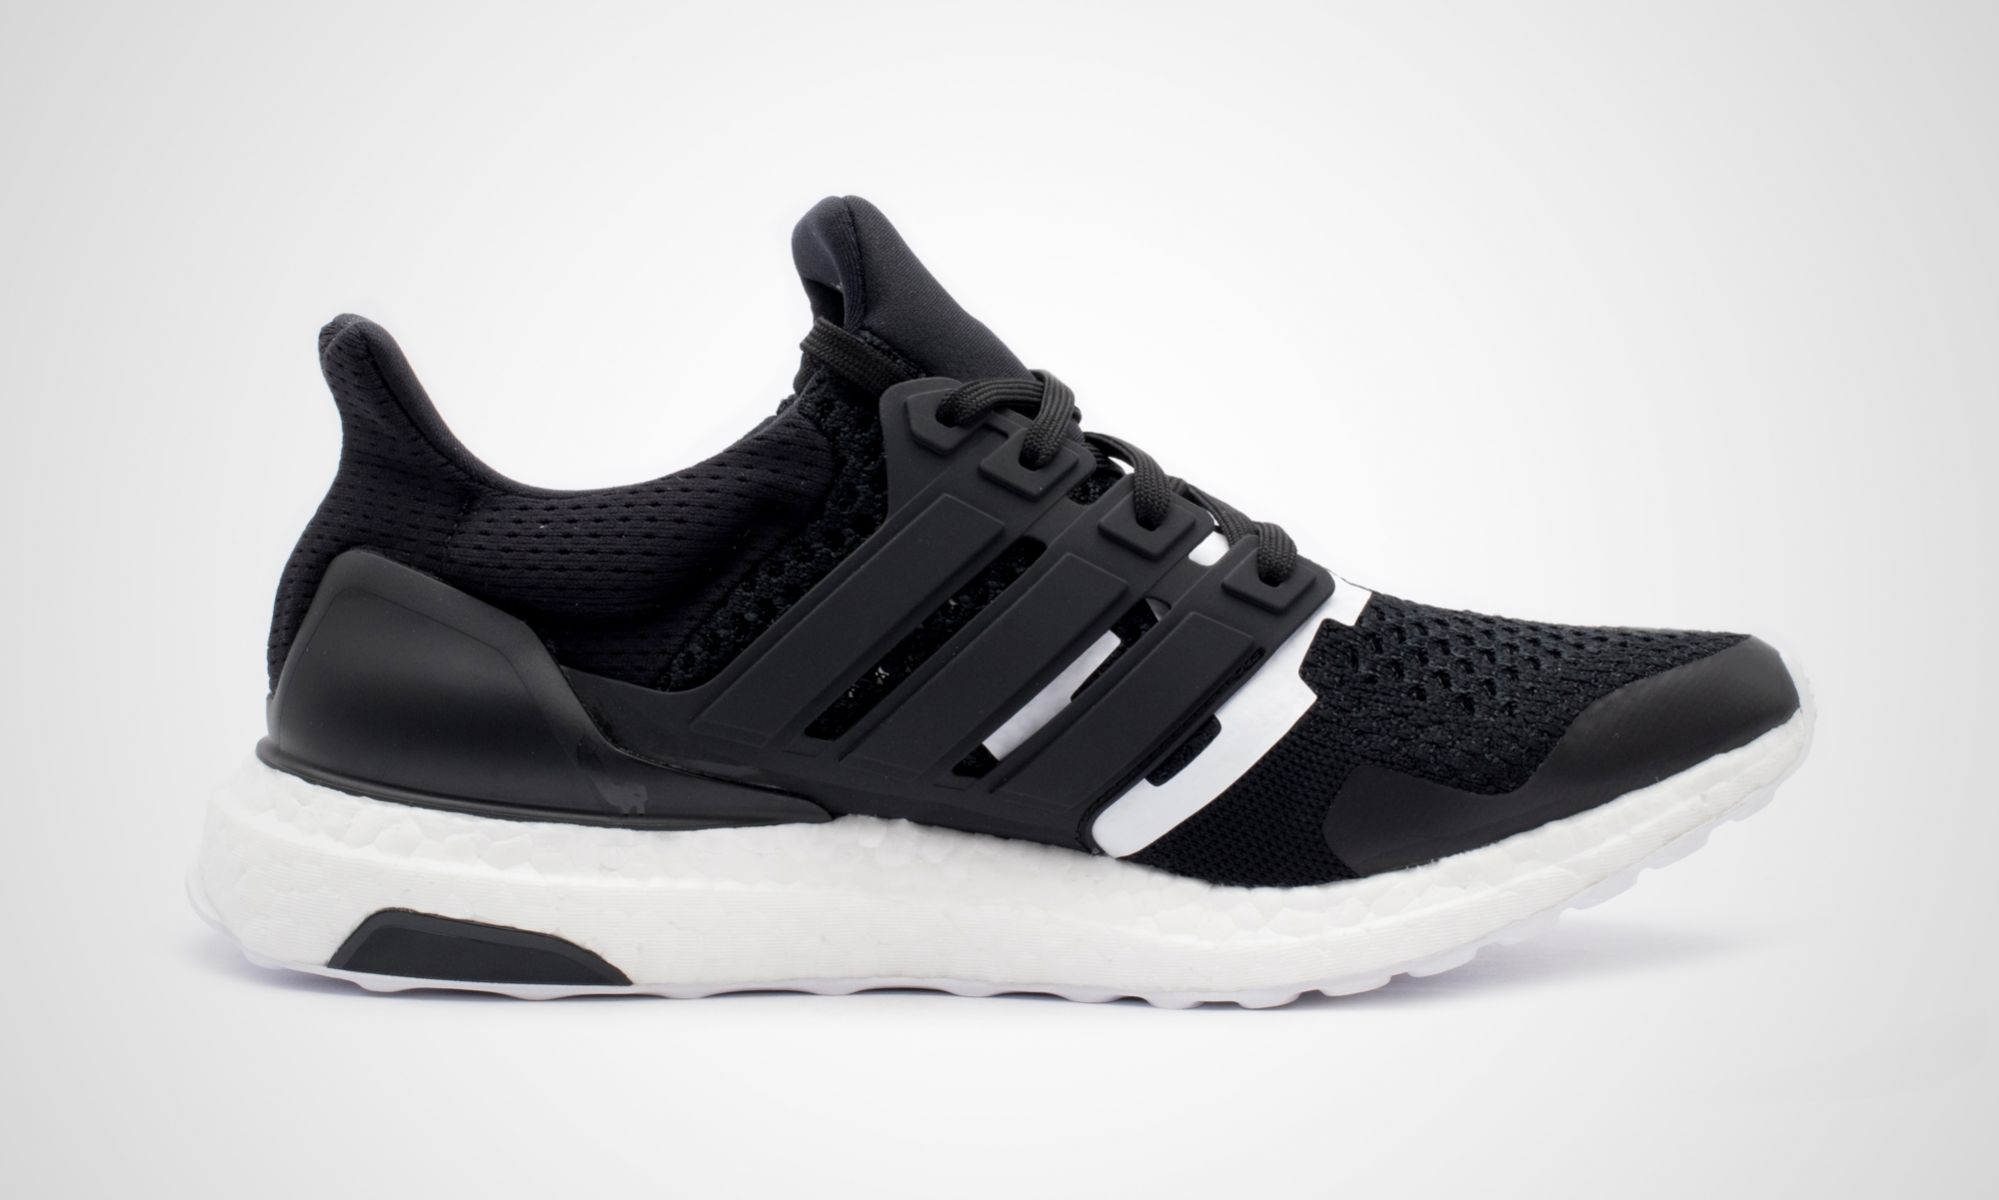 on wholesale more photos new images of adidas x UNDFTD Ultra Boost